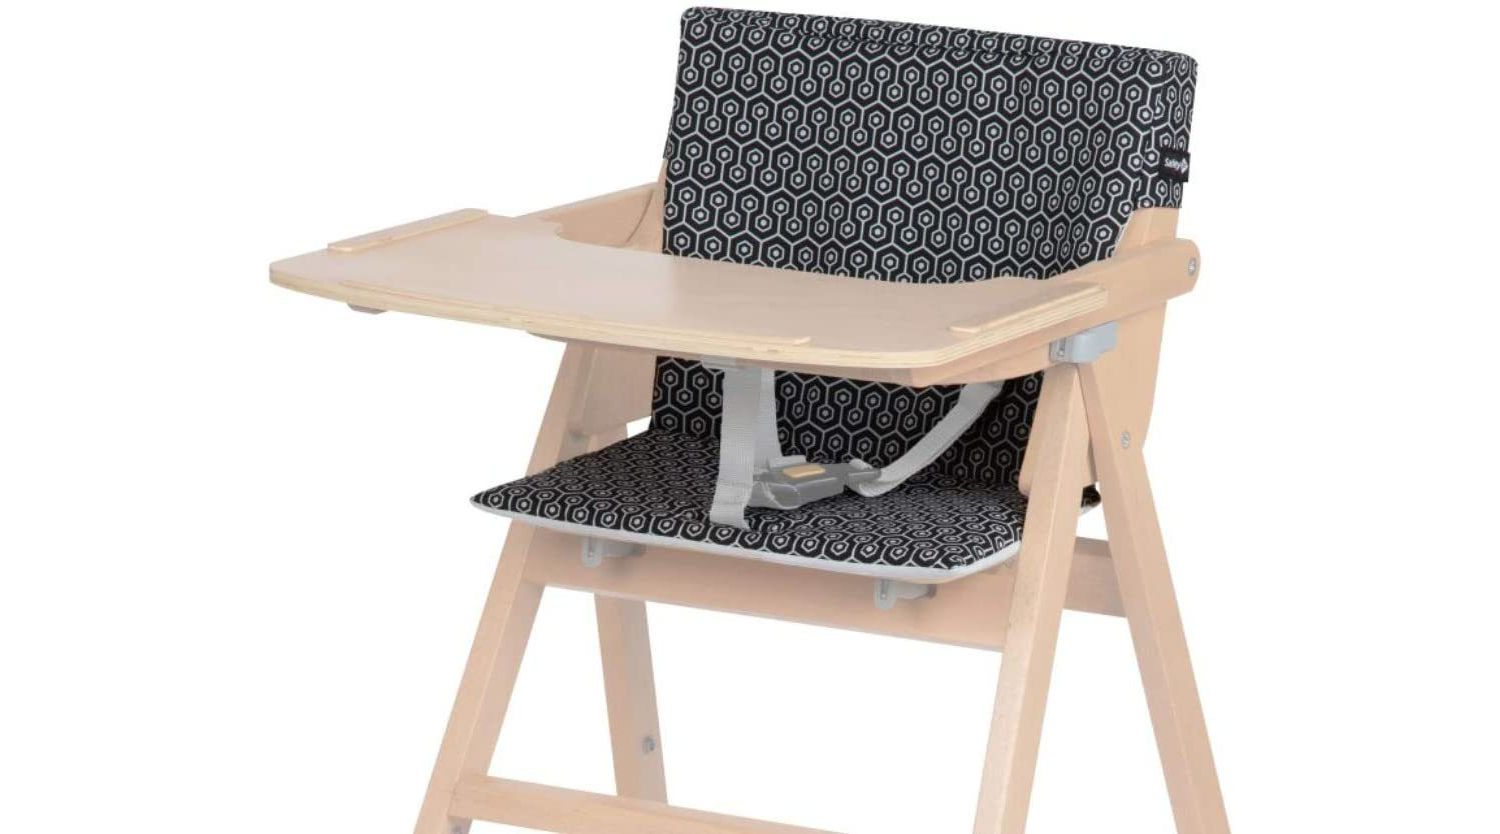 Safety 1st Comfort Cushion for Nordik Basic Wooden Highchair - Choose your design - Geometric